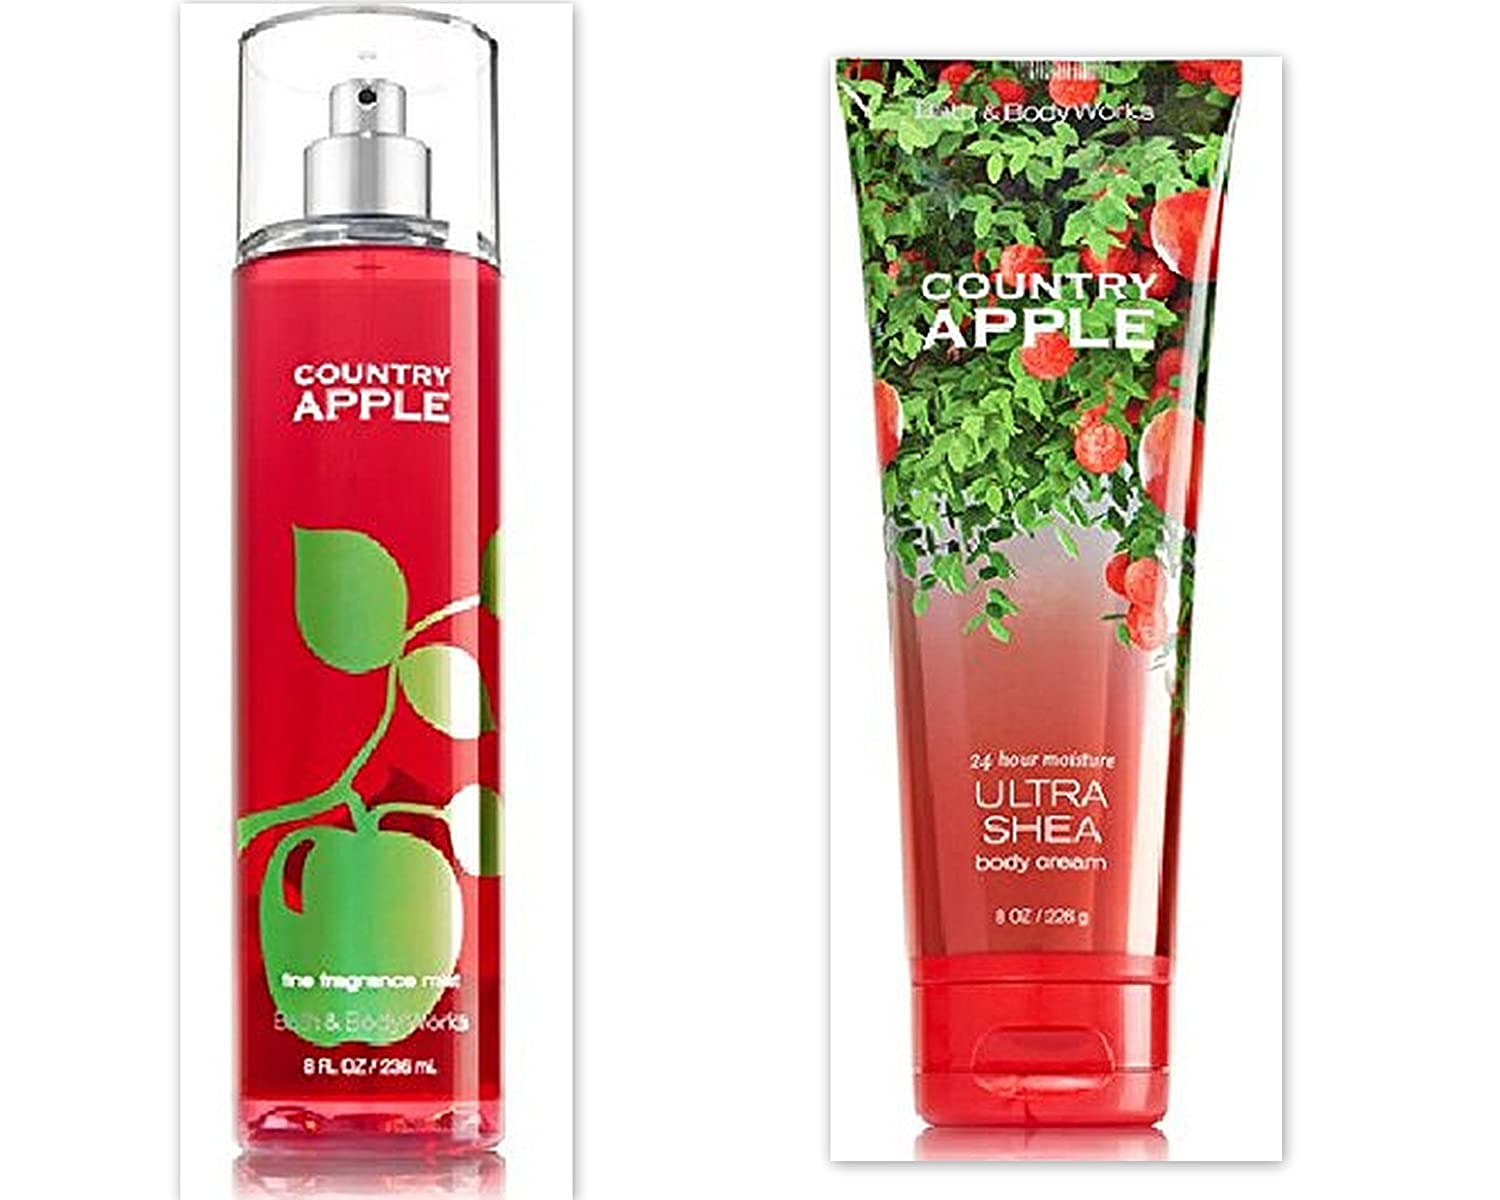 Bath Body Works Country Apple Bundle includes 1-Tube Country Apple Ultra Shea Body Cream, 8 oz + 1-Bottle Country Apple Fine Fragrance Mist, 8 oz